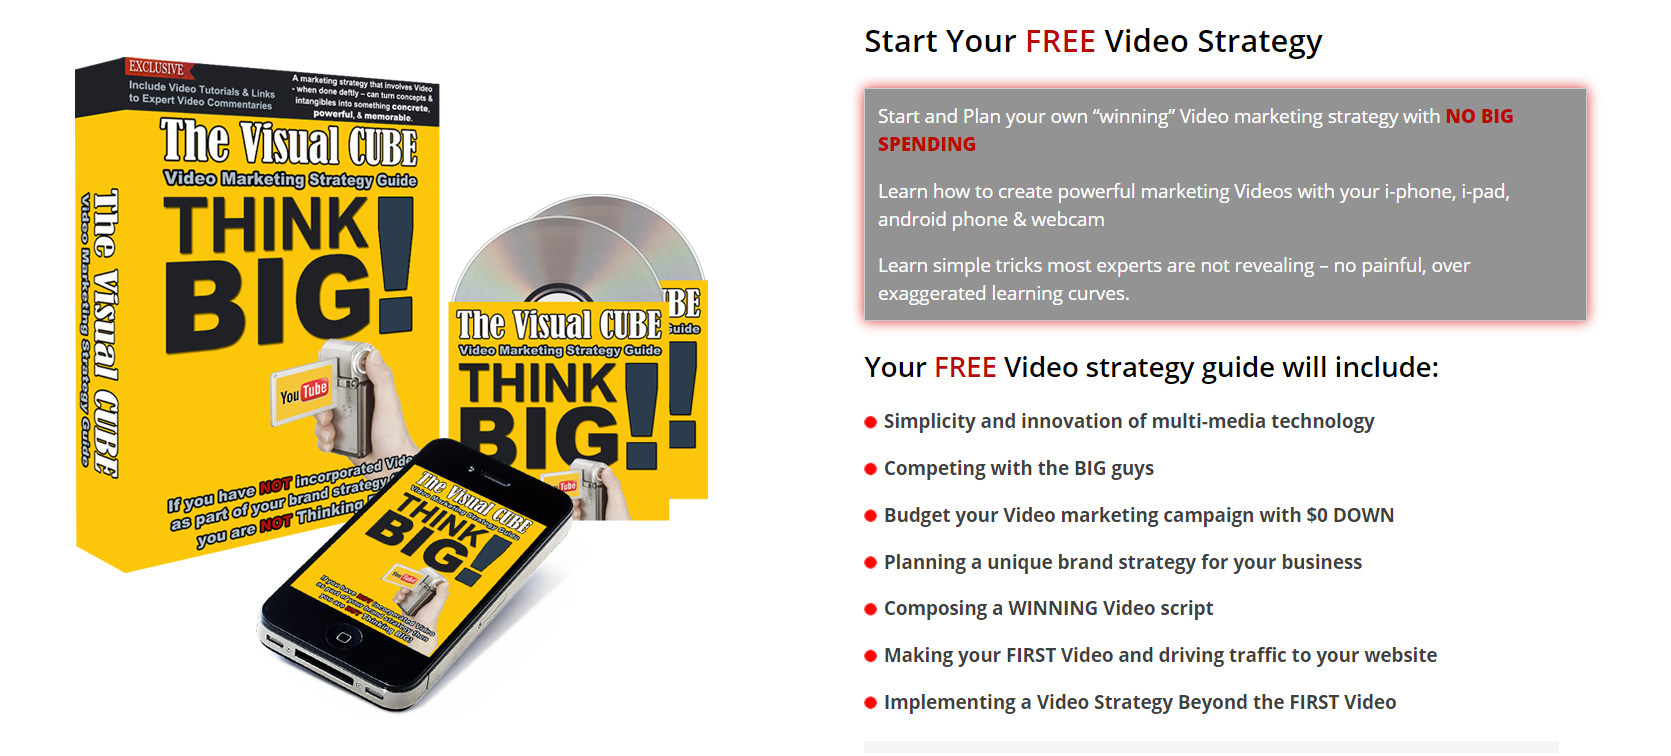 video marketing sri lanka 2020